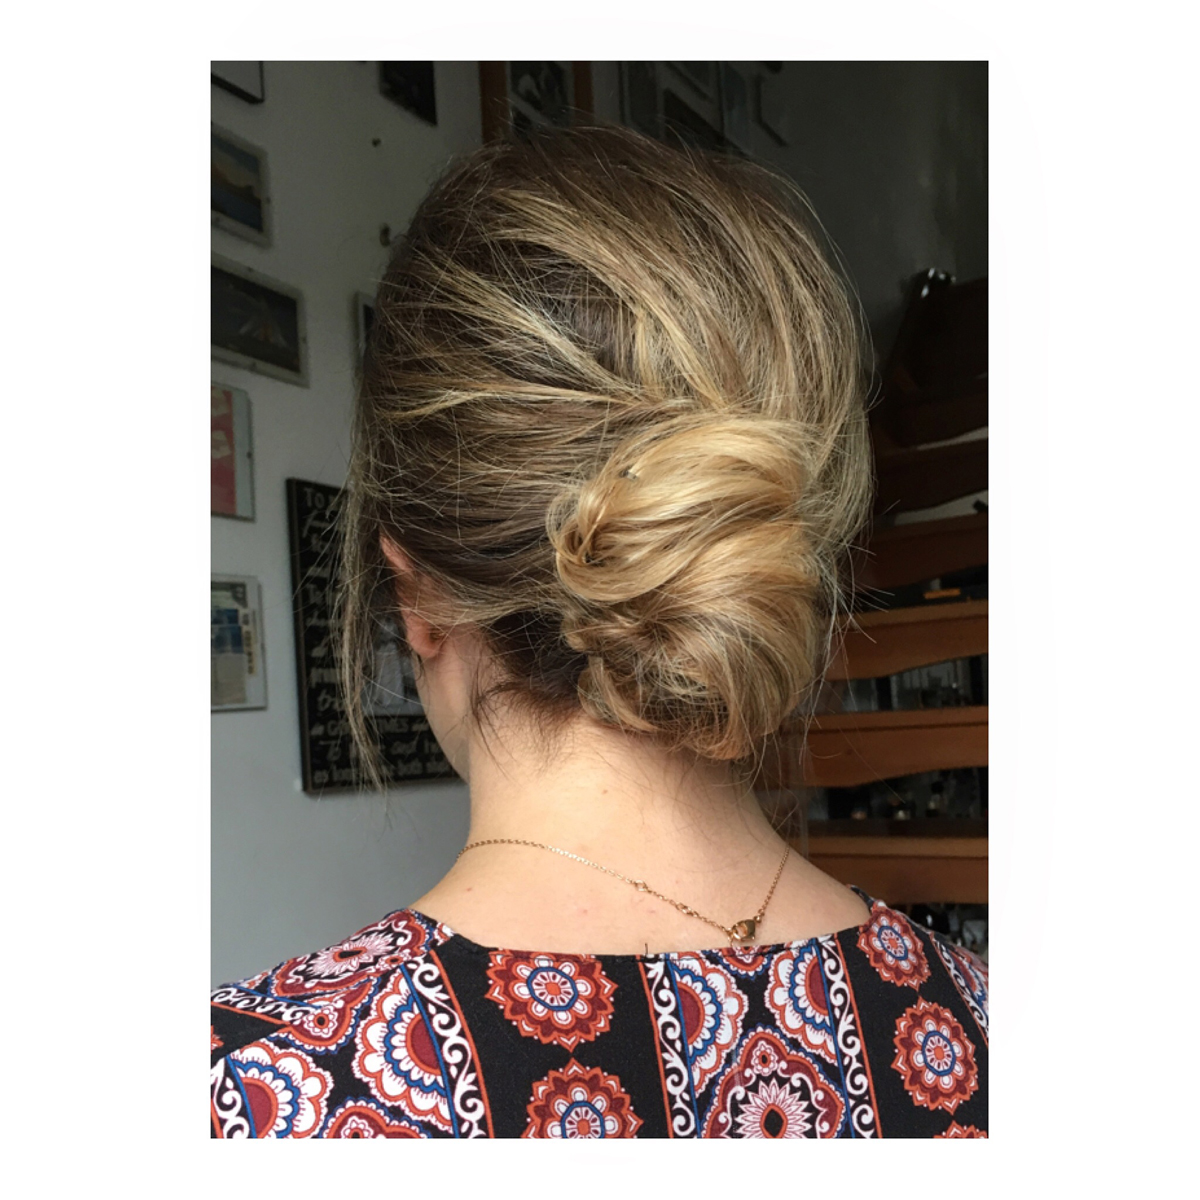 textured low bun wedding updo hair style london surrey middlesex  hampshire berkshire